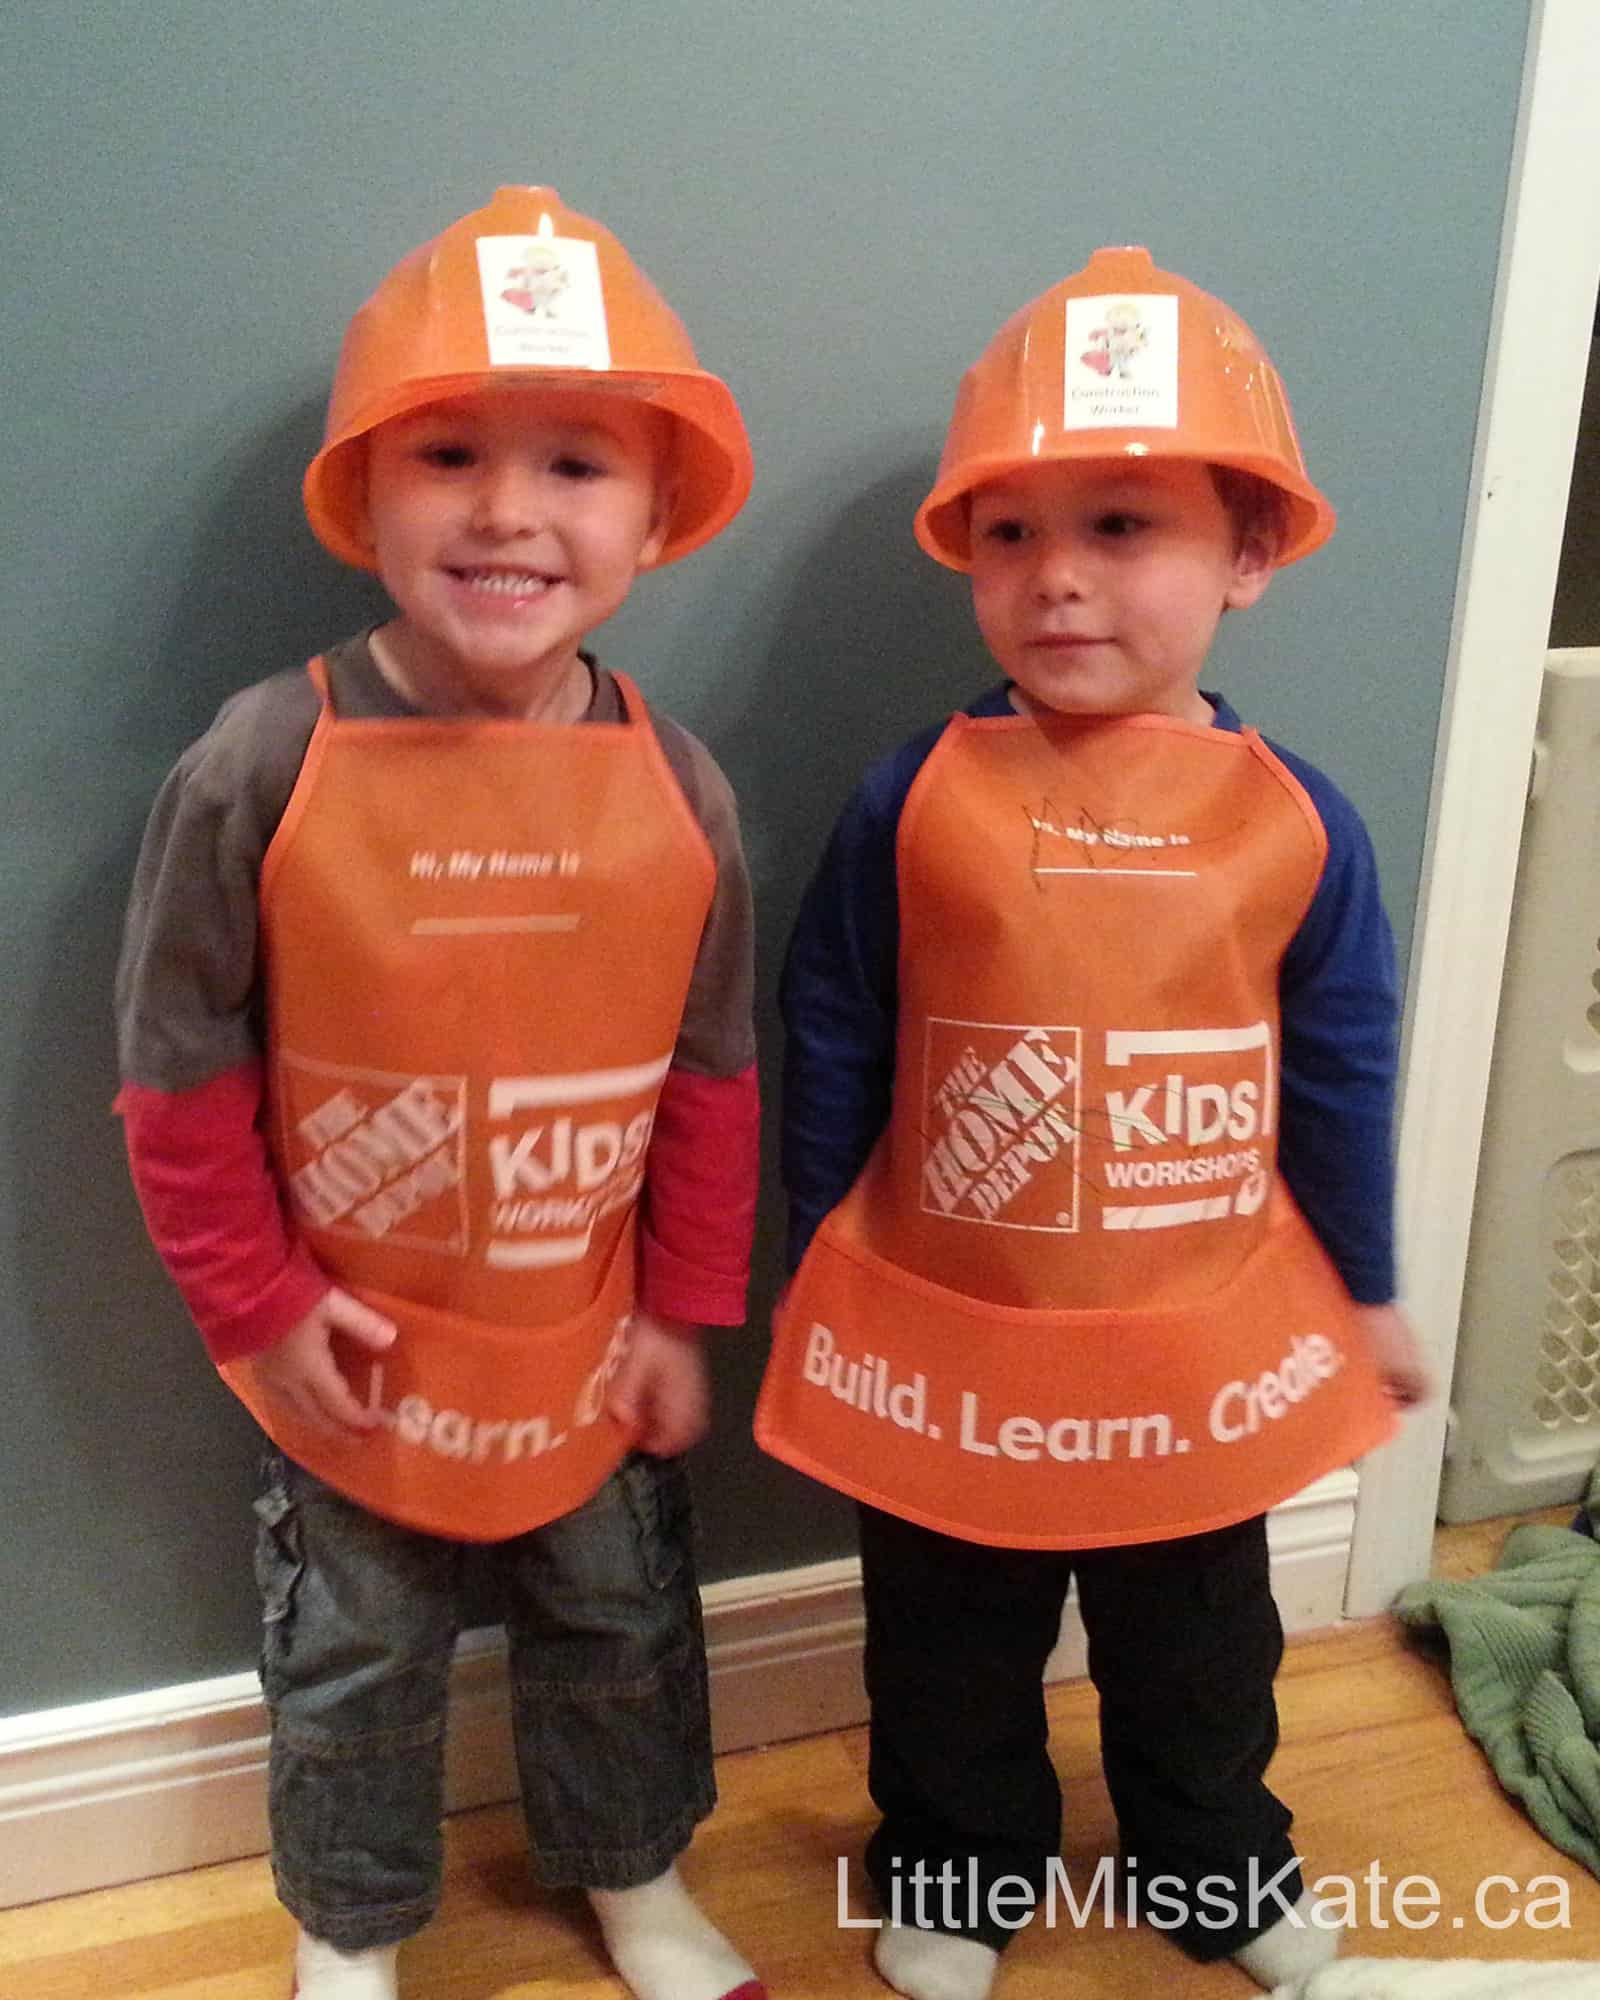 Birthday Party Ideas: Construction Party Games and Activities